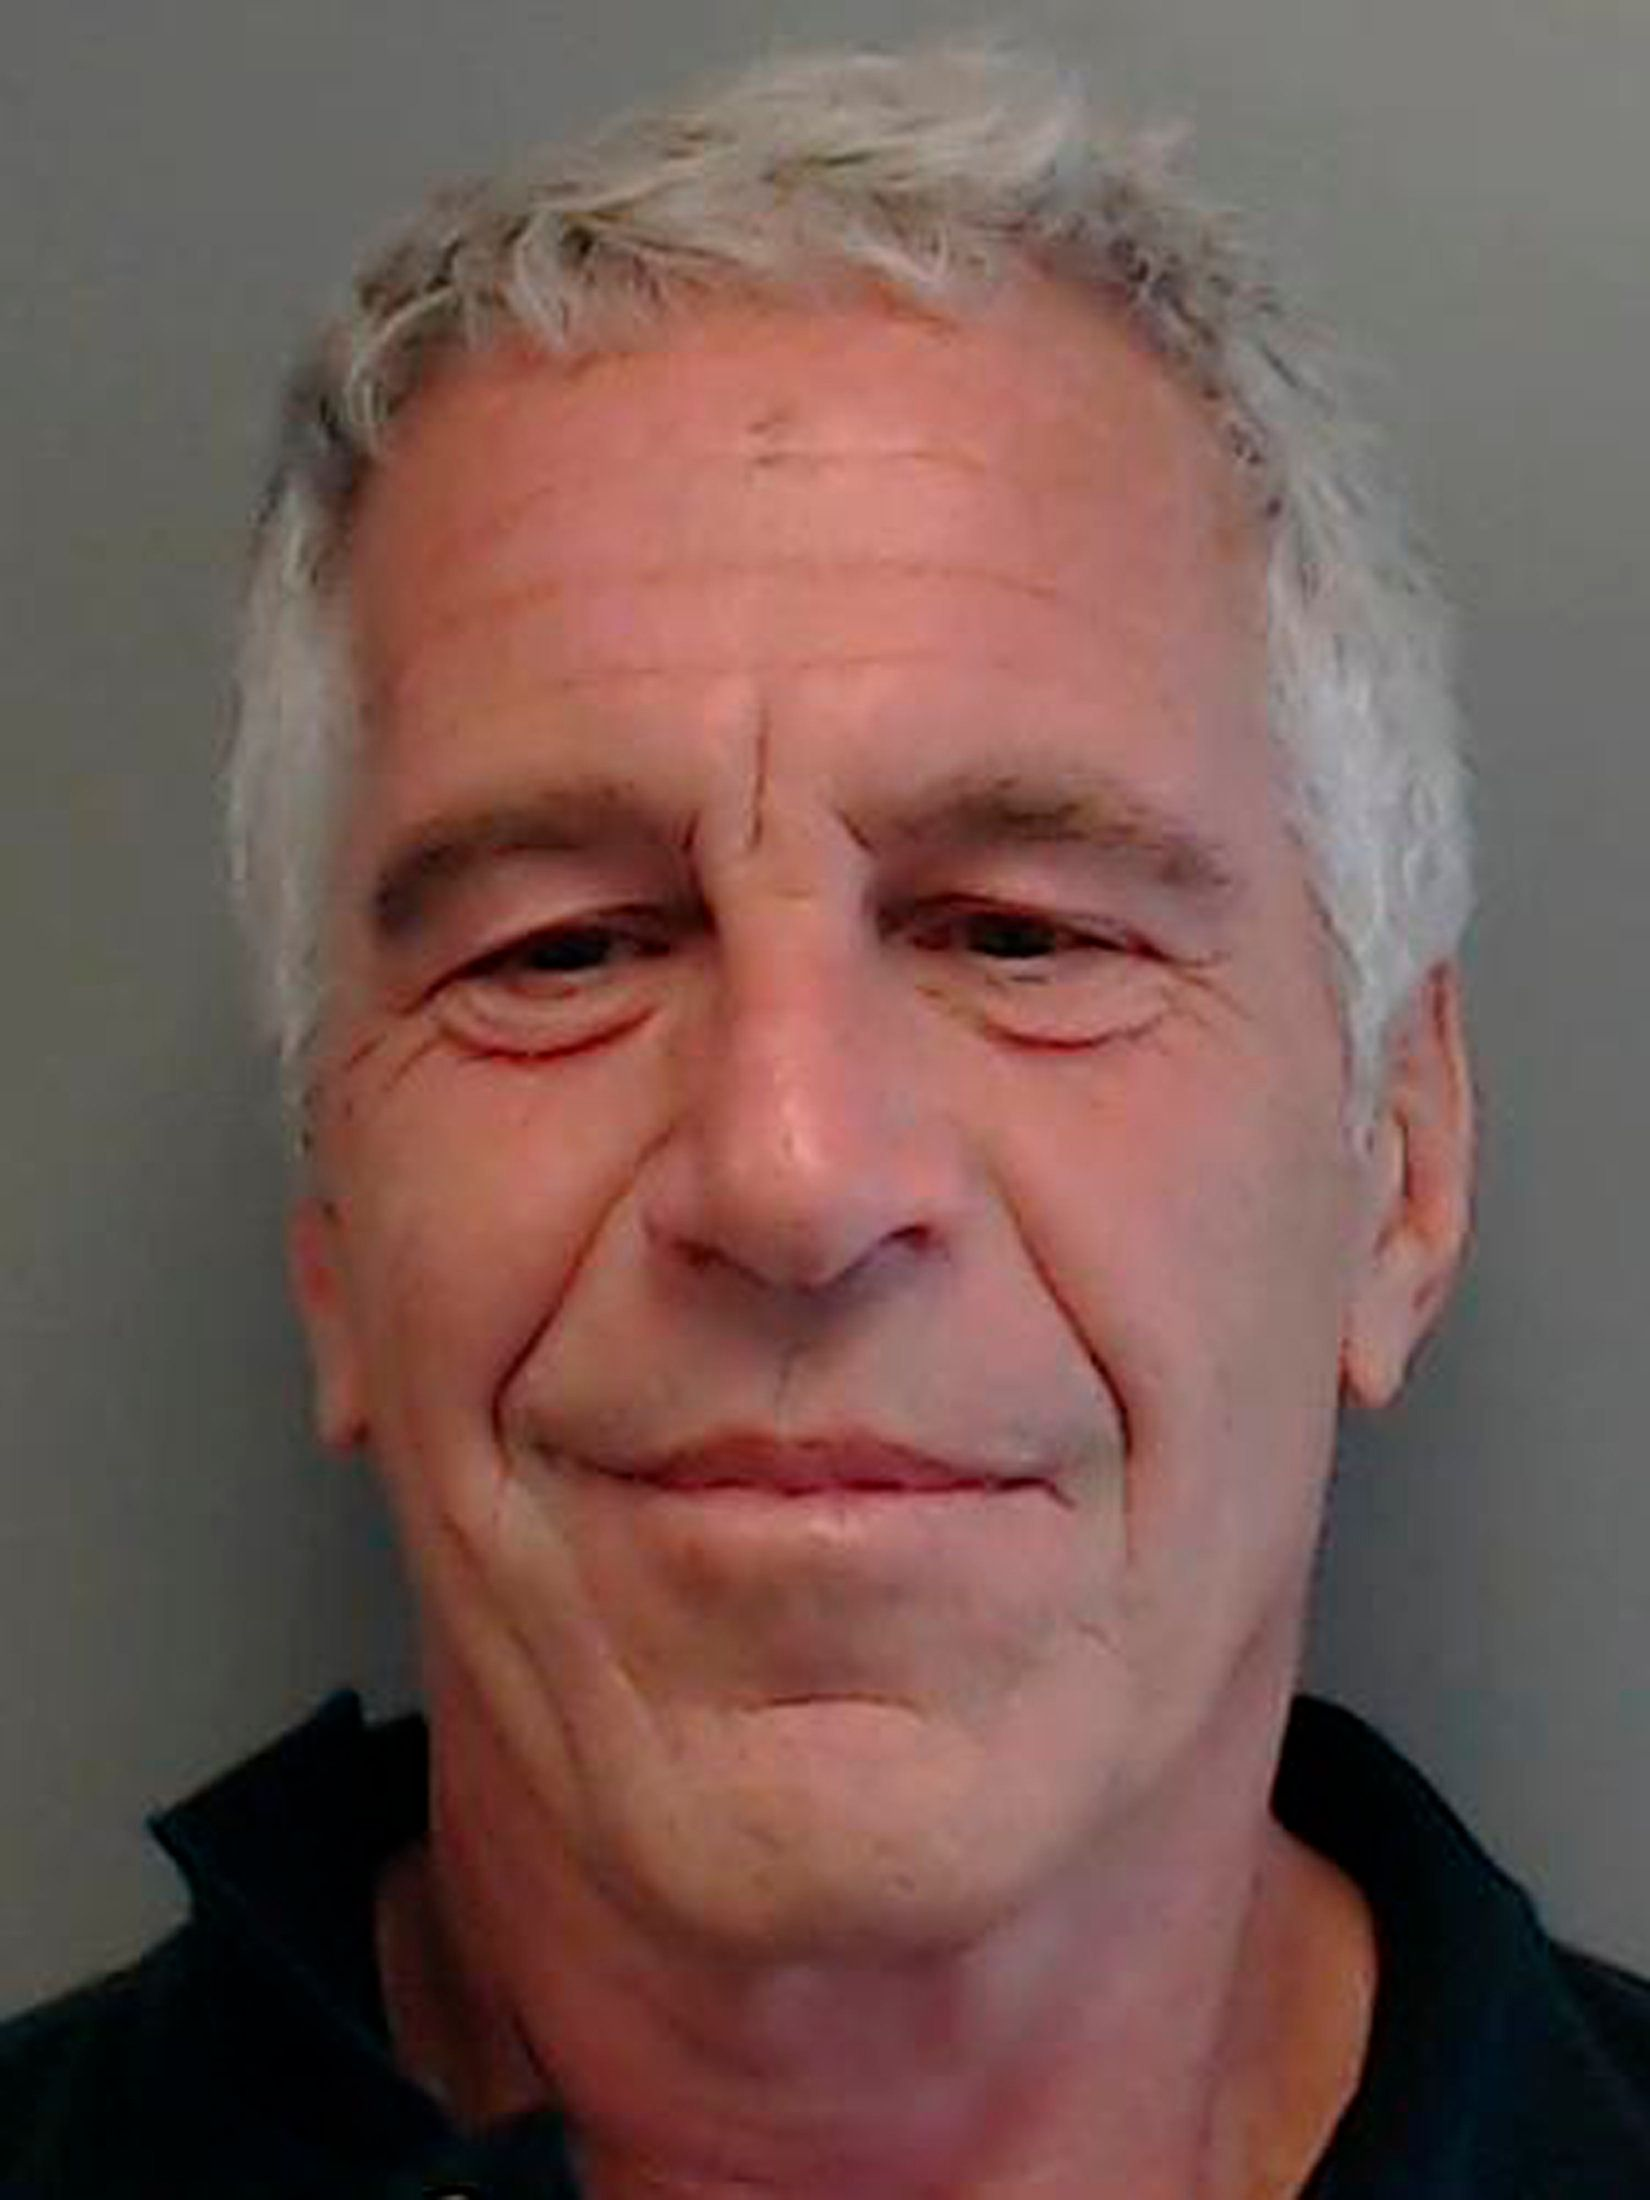 Jeffrey Epstein is shown in this undated Florida Department of Law Enforcement photo. Some charities that have received money from U.S. financier Jeffrey Epstein said they are reviewing their relationships with him or will decline to accept any future gifts from him in the wake of recent allegations he forced an underage girl to have sex with Britain's Prince Andrew and other powerful men. In interviews with Reuters, three recipients of Epstein's money said they would accept no more gifts, at least while the recent allegations are under review.  REUTERS/Florida Department of Law Enforcement/Handout via Reuters (UNITED STATES - Tags: CRIME LAW HEADSHOT) FOR EDITORIAL USE ONLY. NOT FOR SALE FOR MARKETING OR ADVERTISING CAMPAIGNS. THIS IMAGE HAS BEEN SUPPLIED BY A THIRD PARTY. IT IS DISTRIBUTED, EXACTLY AS RECEIVED BY REUTERS, AS A SERVICE TO CLIENTS